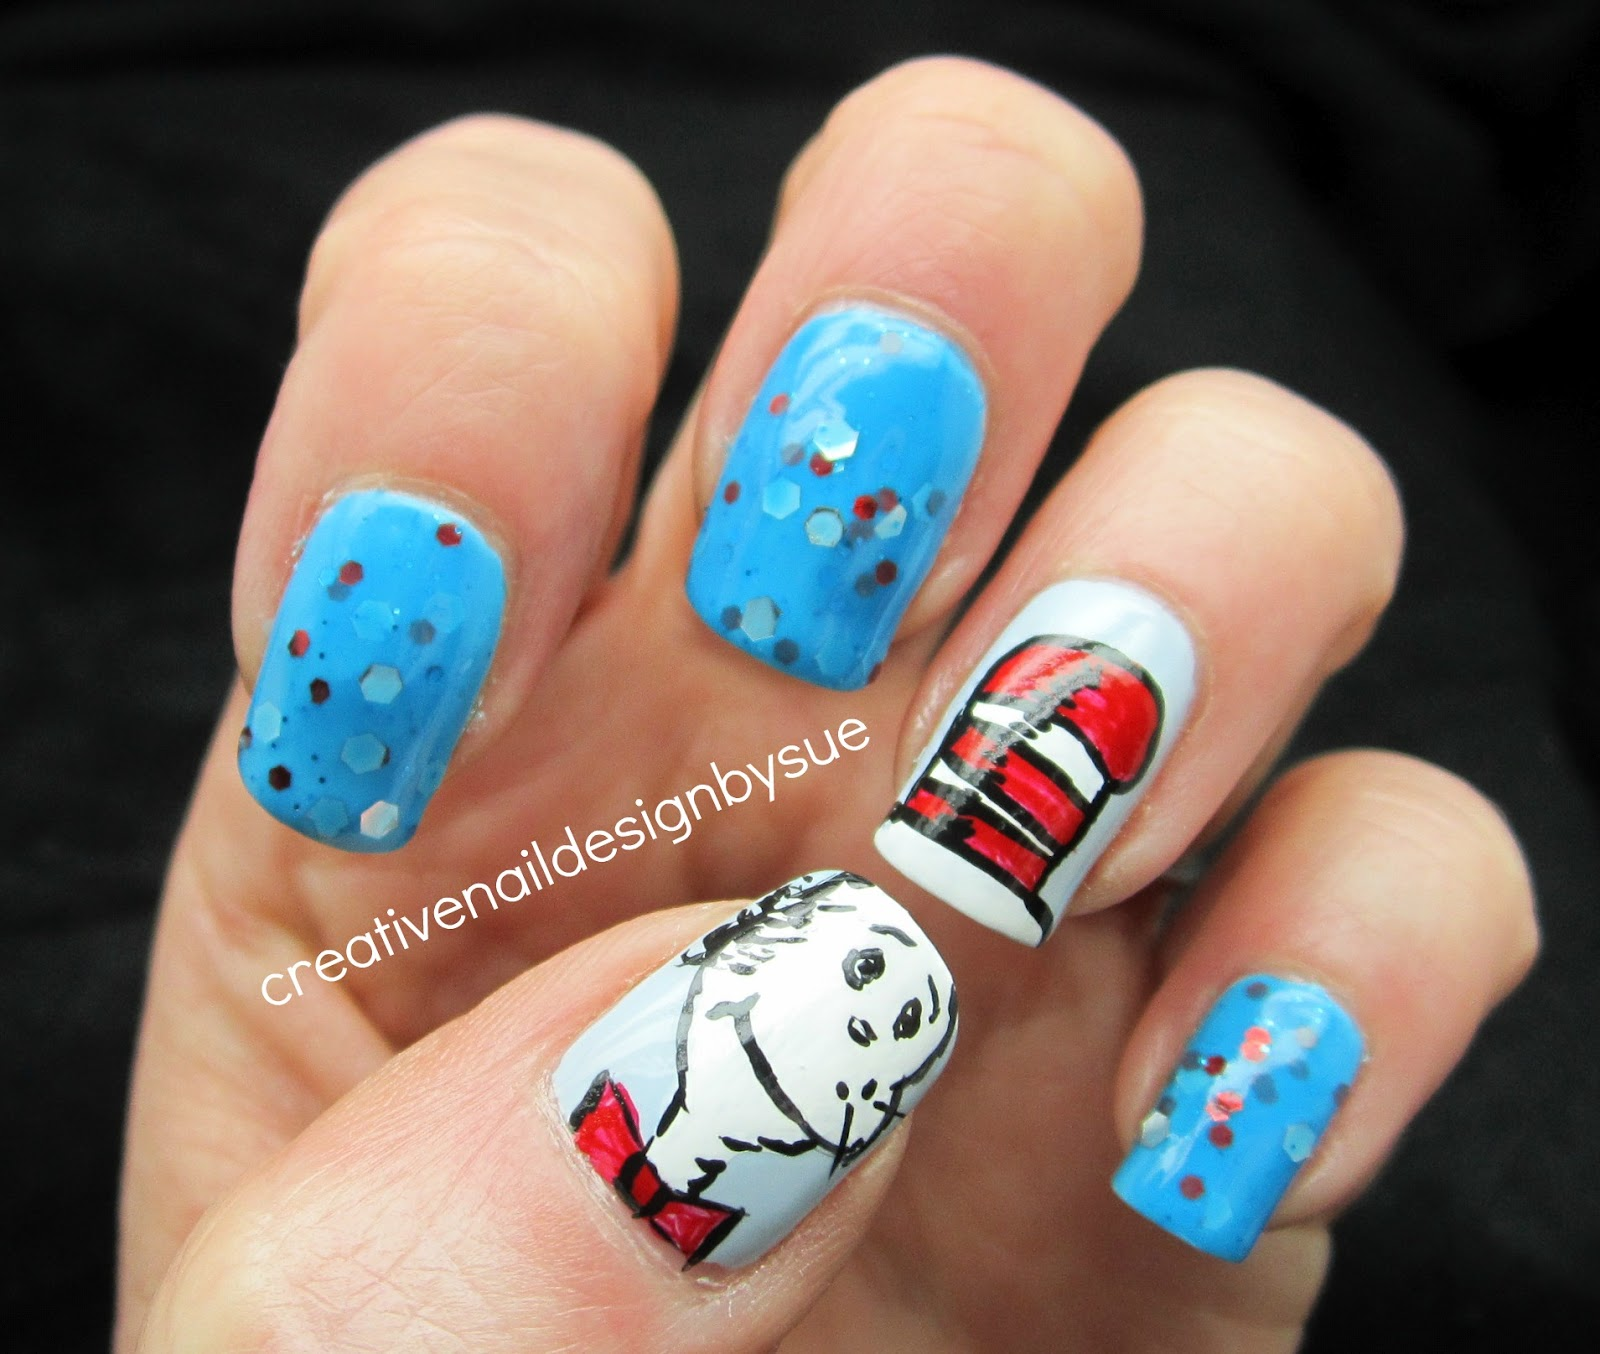 Creative Nail Design By Sue Whimsical Ideas By Pam Seuss